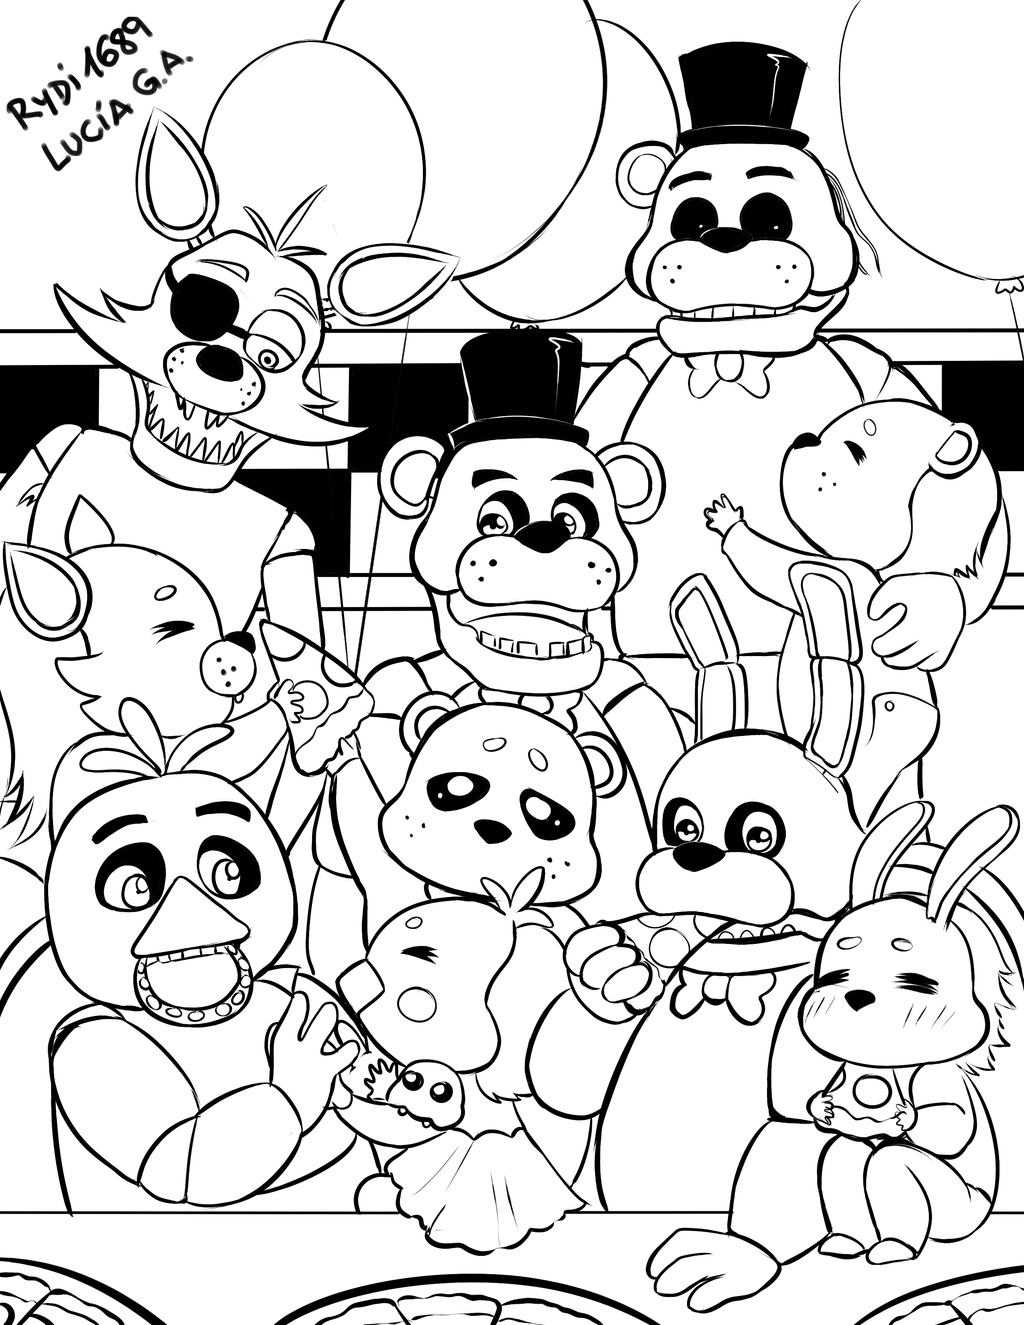 It's just a photo of Crazy Free Printable Five Nights at Freddy's Coloring Pages